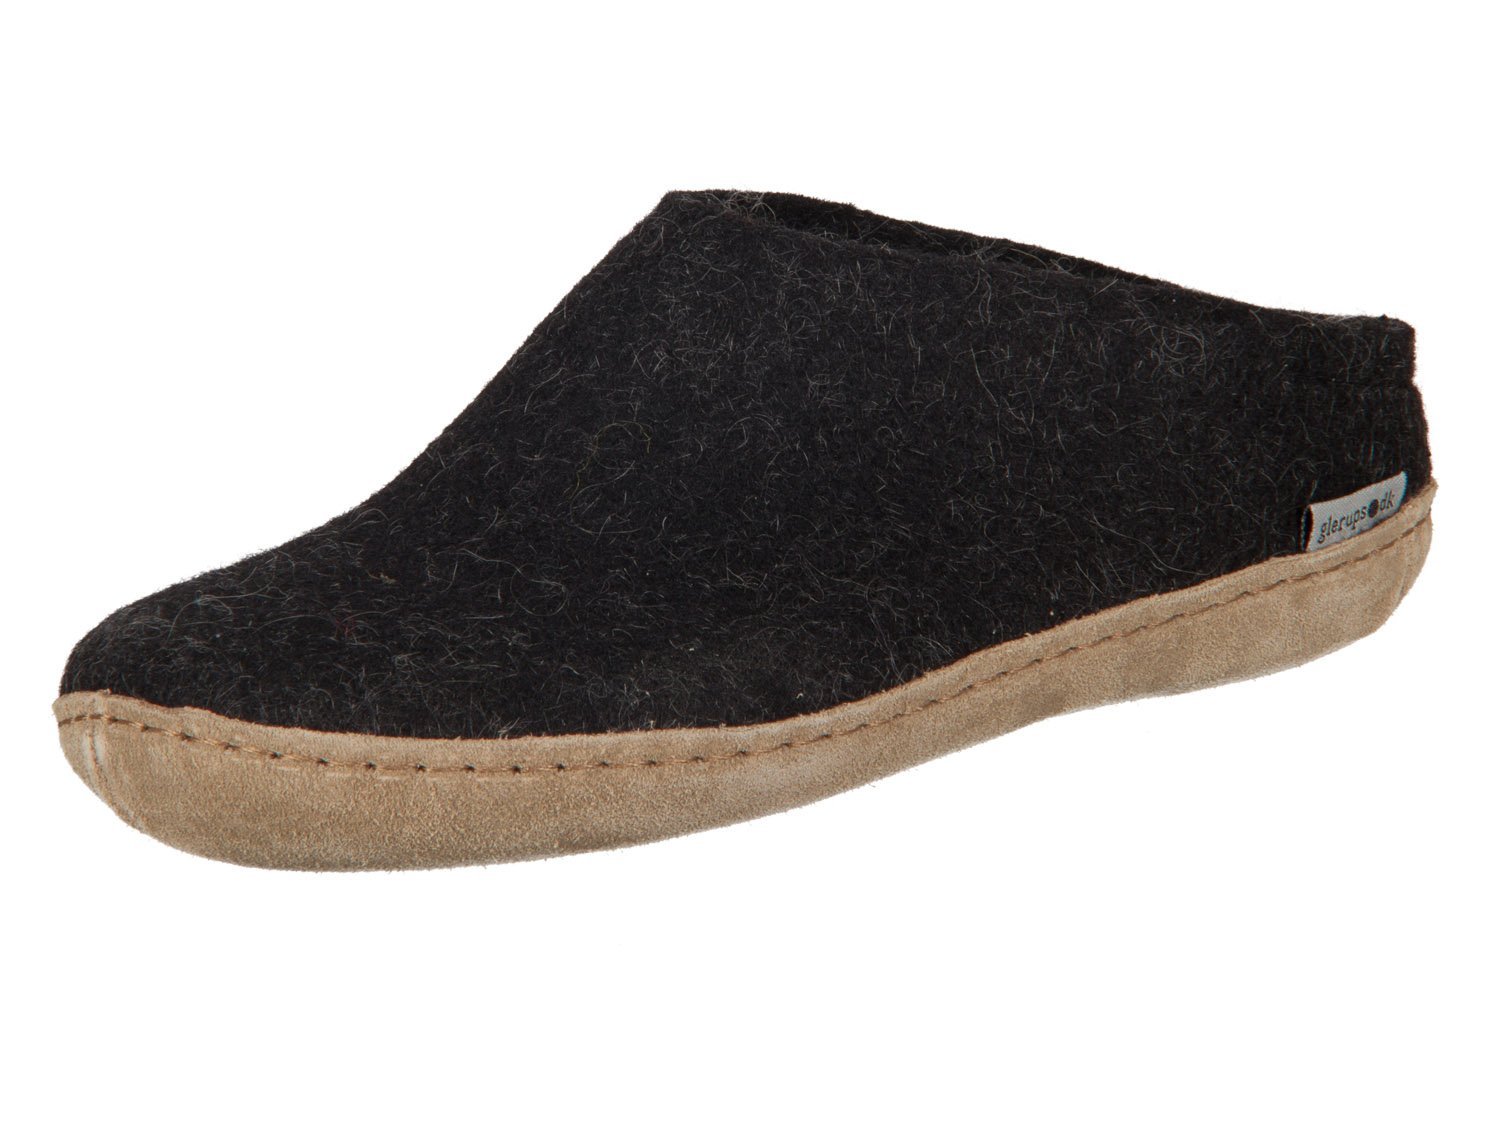 Glerups Unisex Model B Charcoal Slipper - 38 ,38 (US Women's 8-8.5) B(M) US